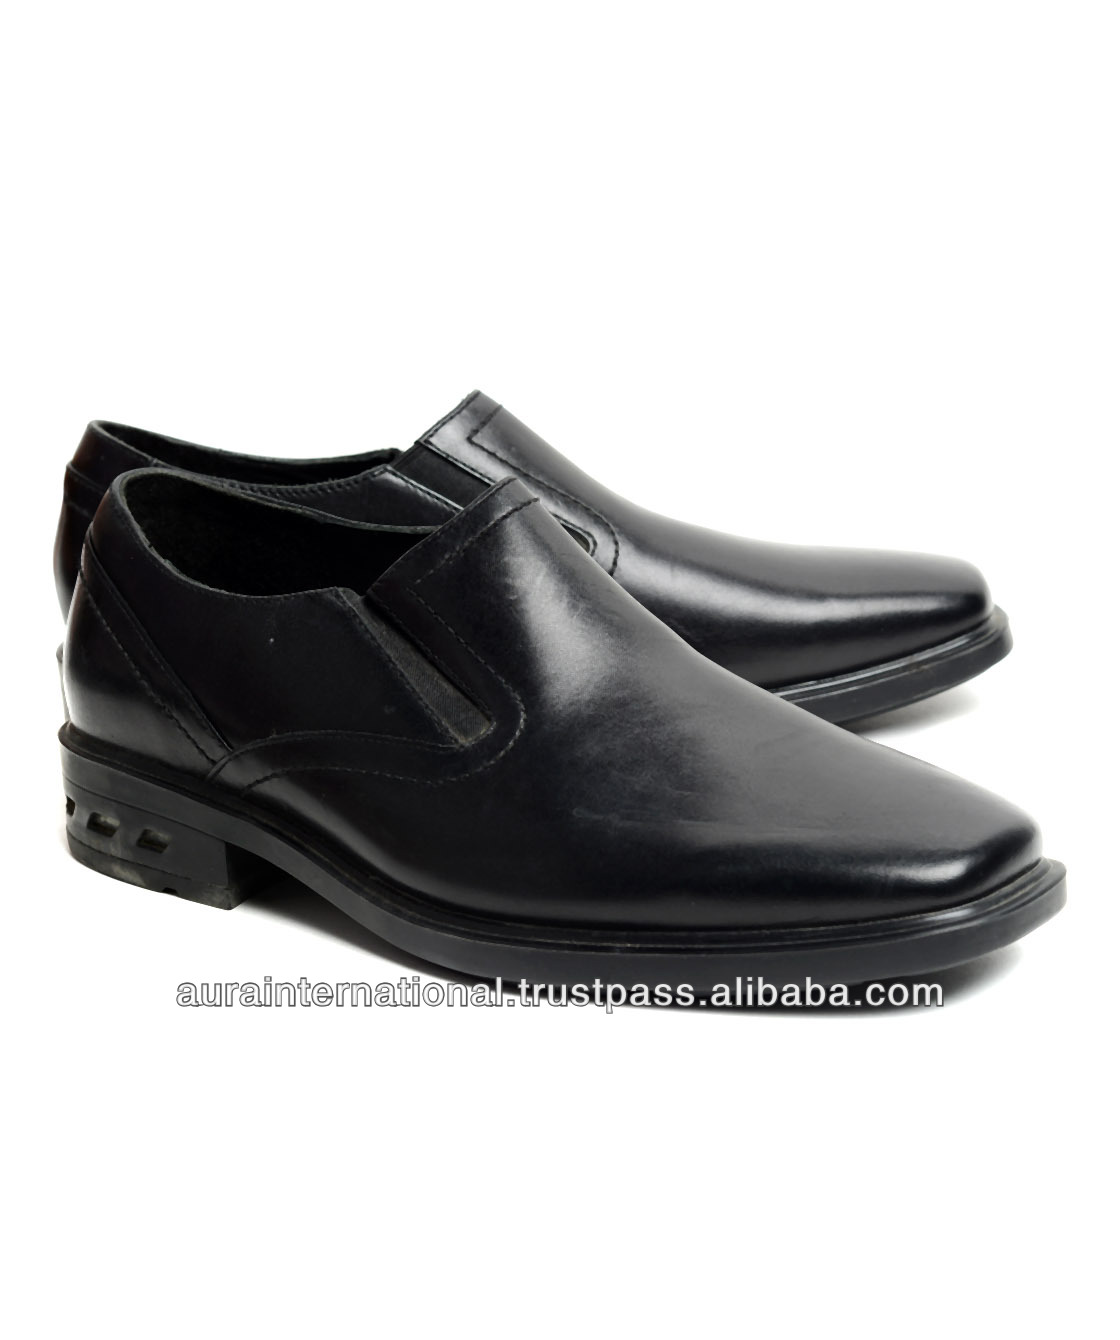 Hand Made Leather Shoes for Mens Wholesale (Paypal Accepted)